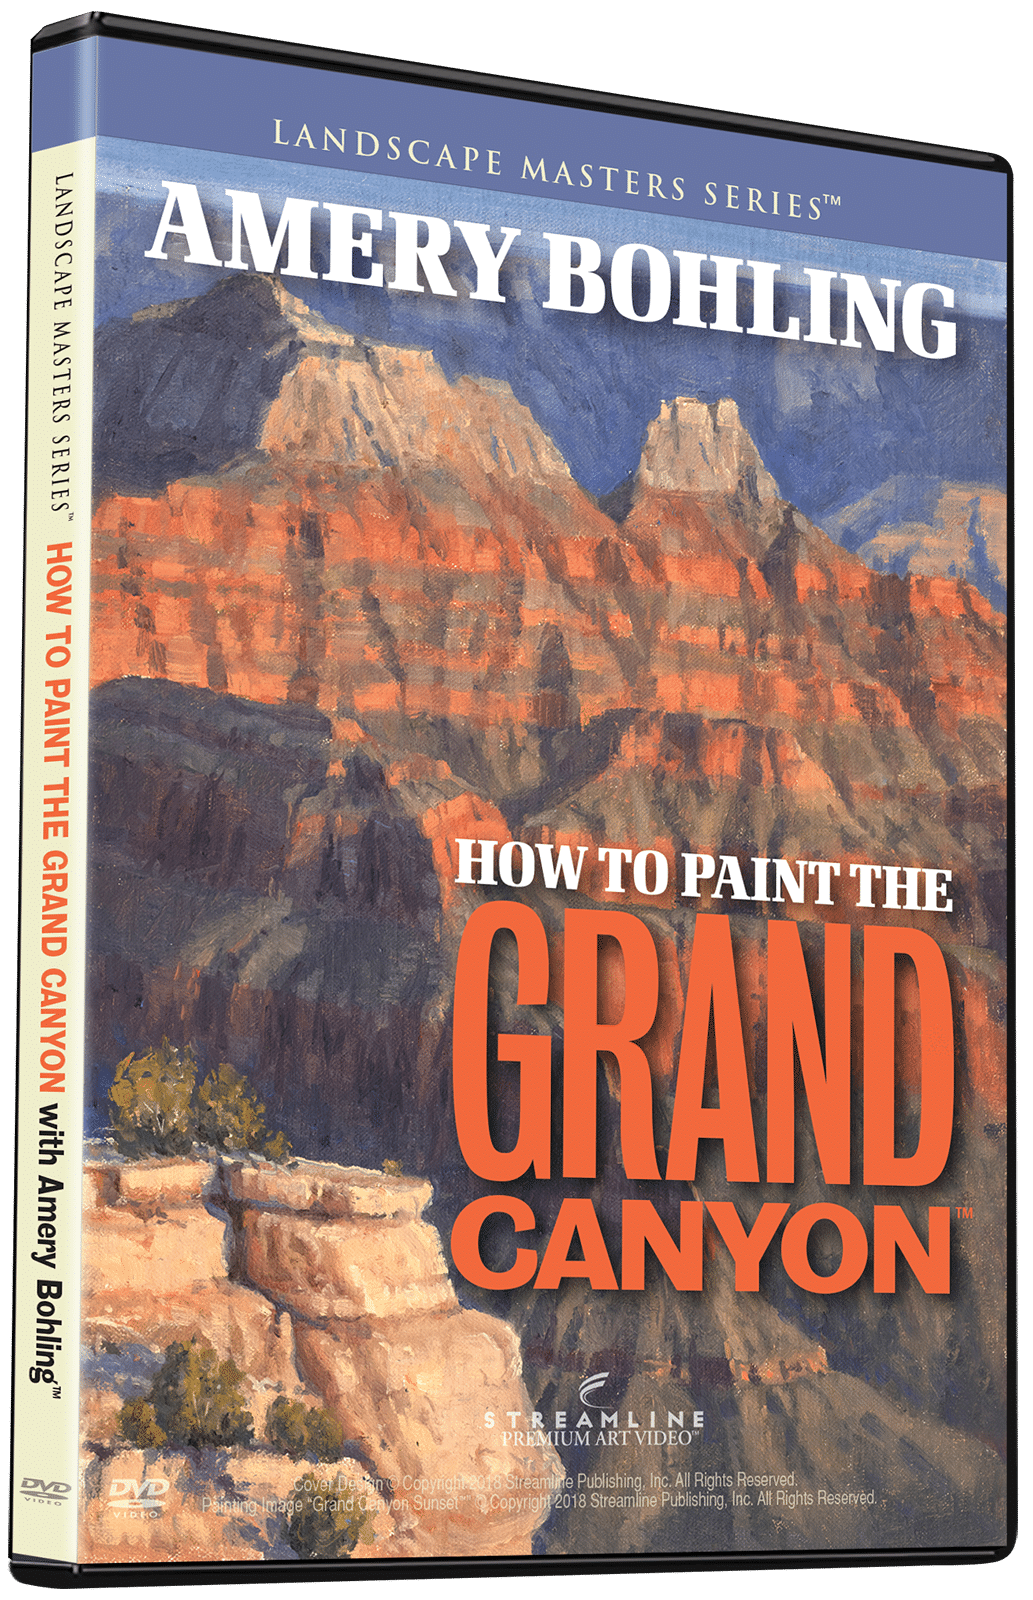 Amery Bohling: How To Paint The Grand Canyon